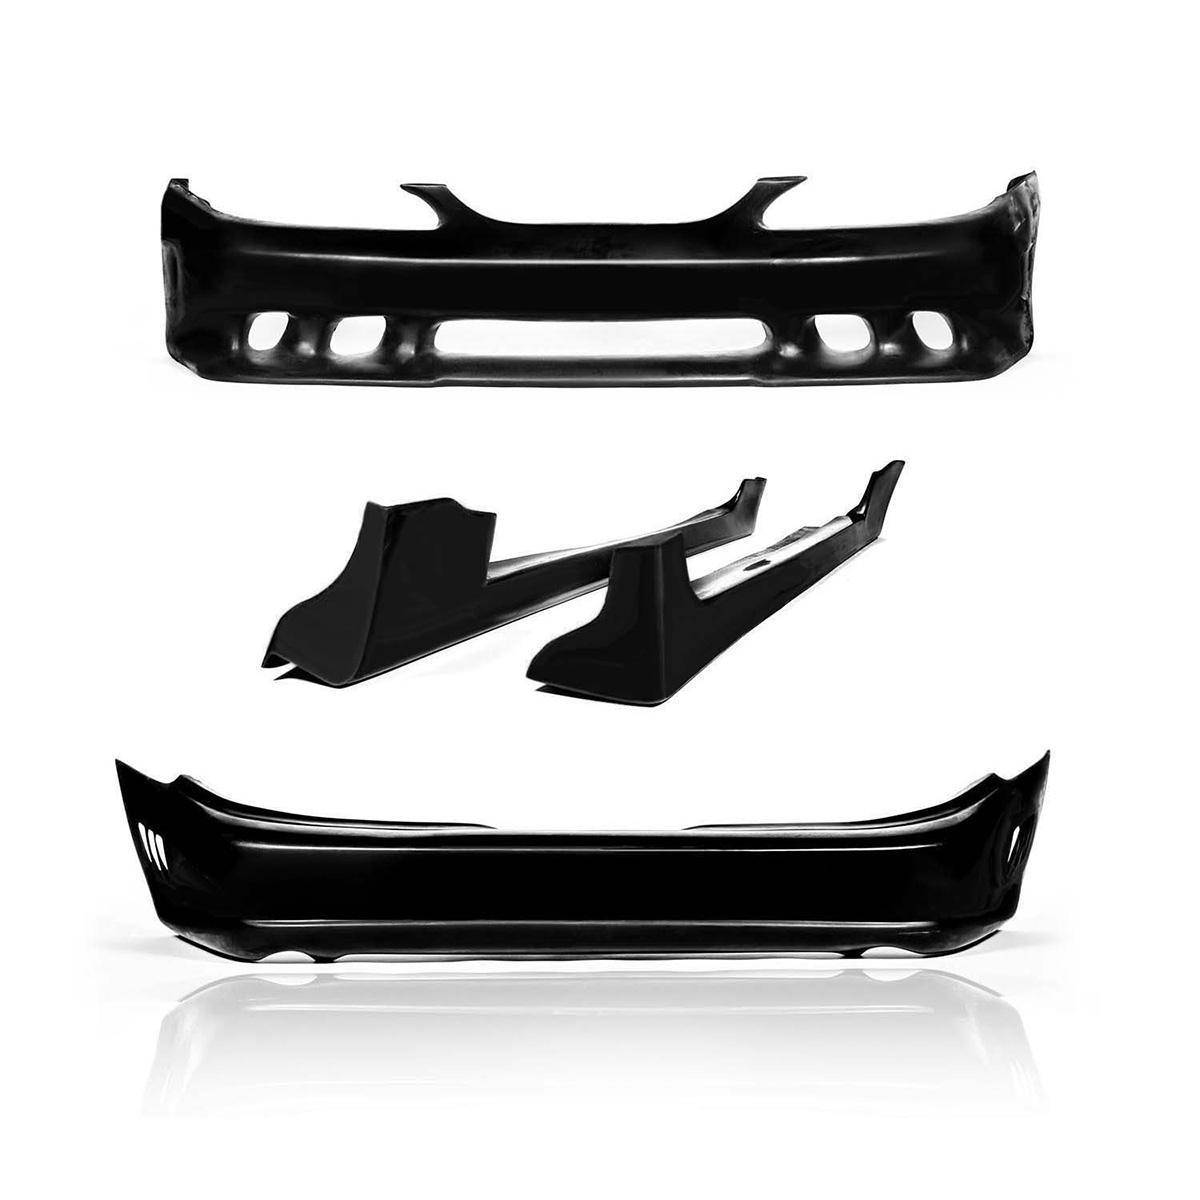 Ford Mustang 1994-1998 Sallen Style 4 Piece Polyurethane Full Body Kit